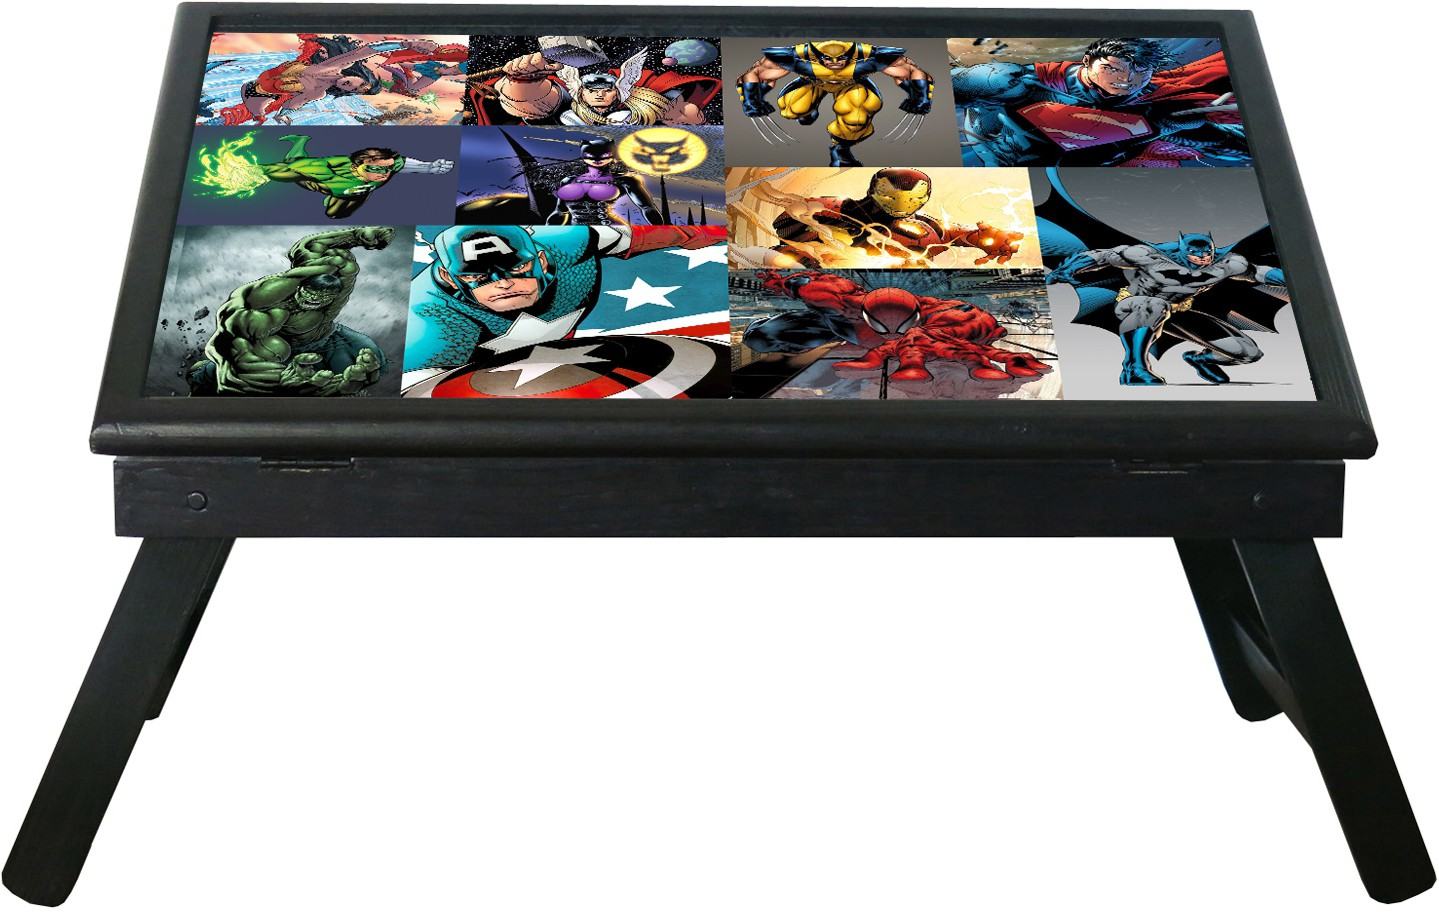 View 10 am Superheroes table Engineered Wood Study Table(Free Standing, Finish Color - Black) Furniture (10 am)